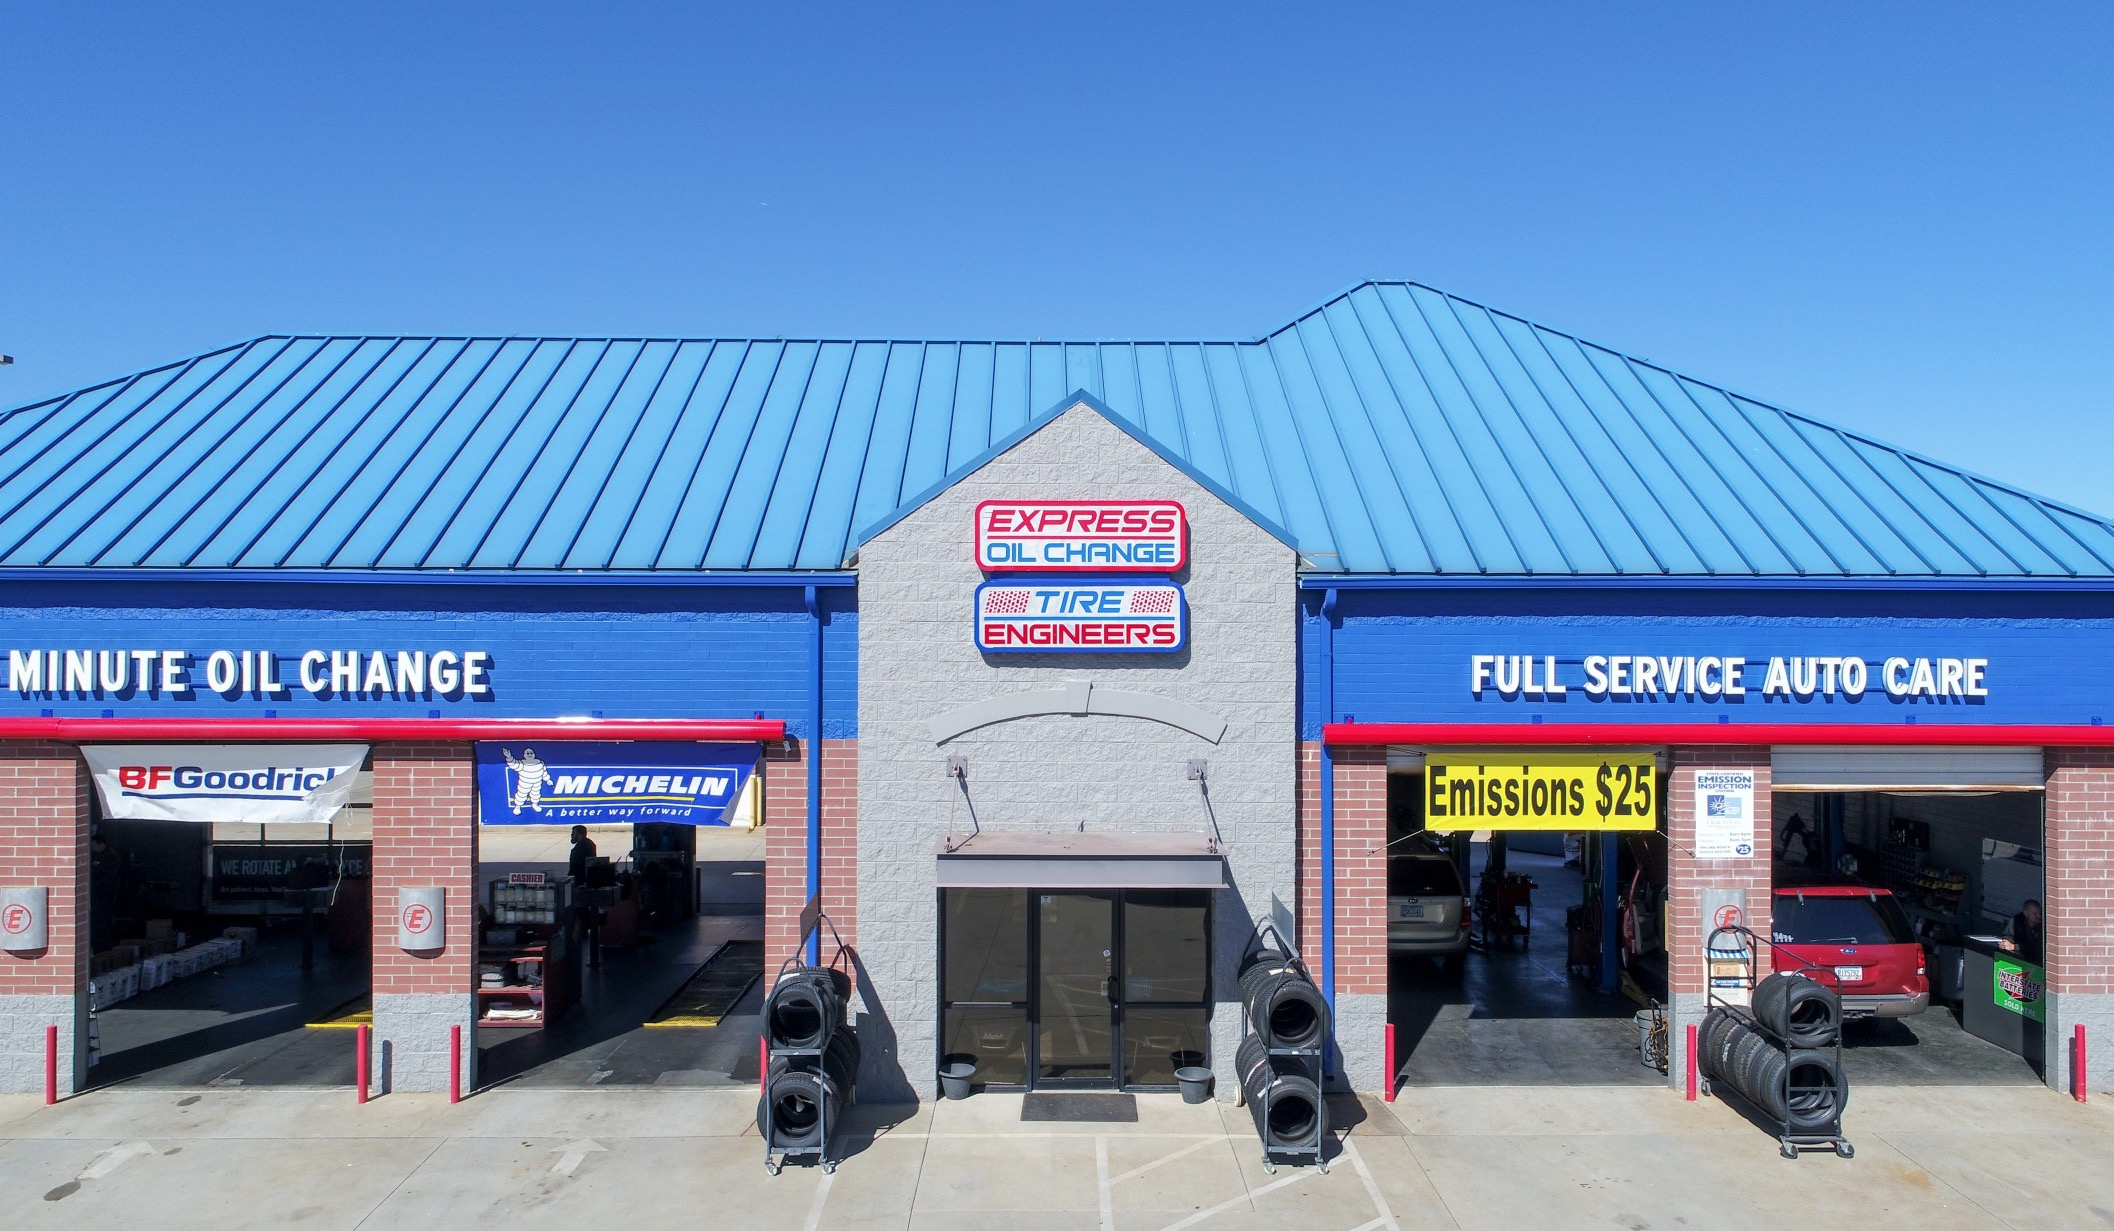 Express Oil Change & Tire Engineers at McDonough, GA store